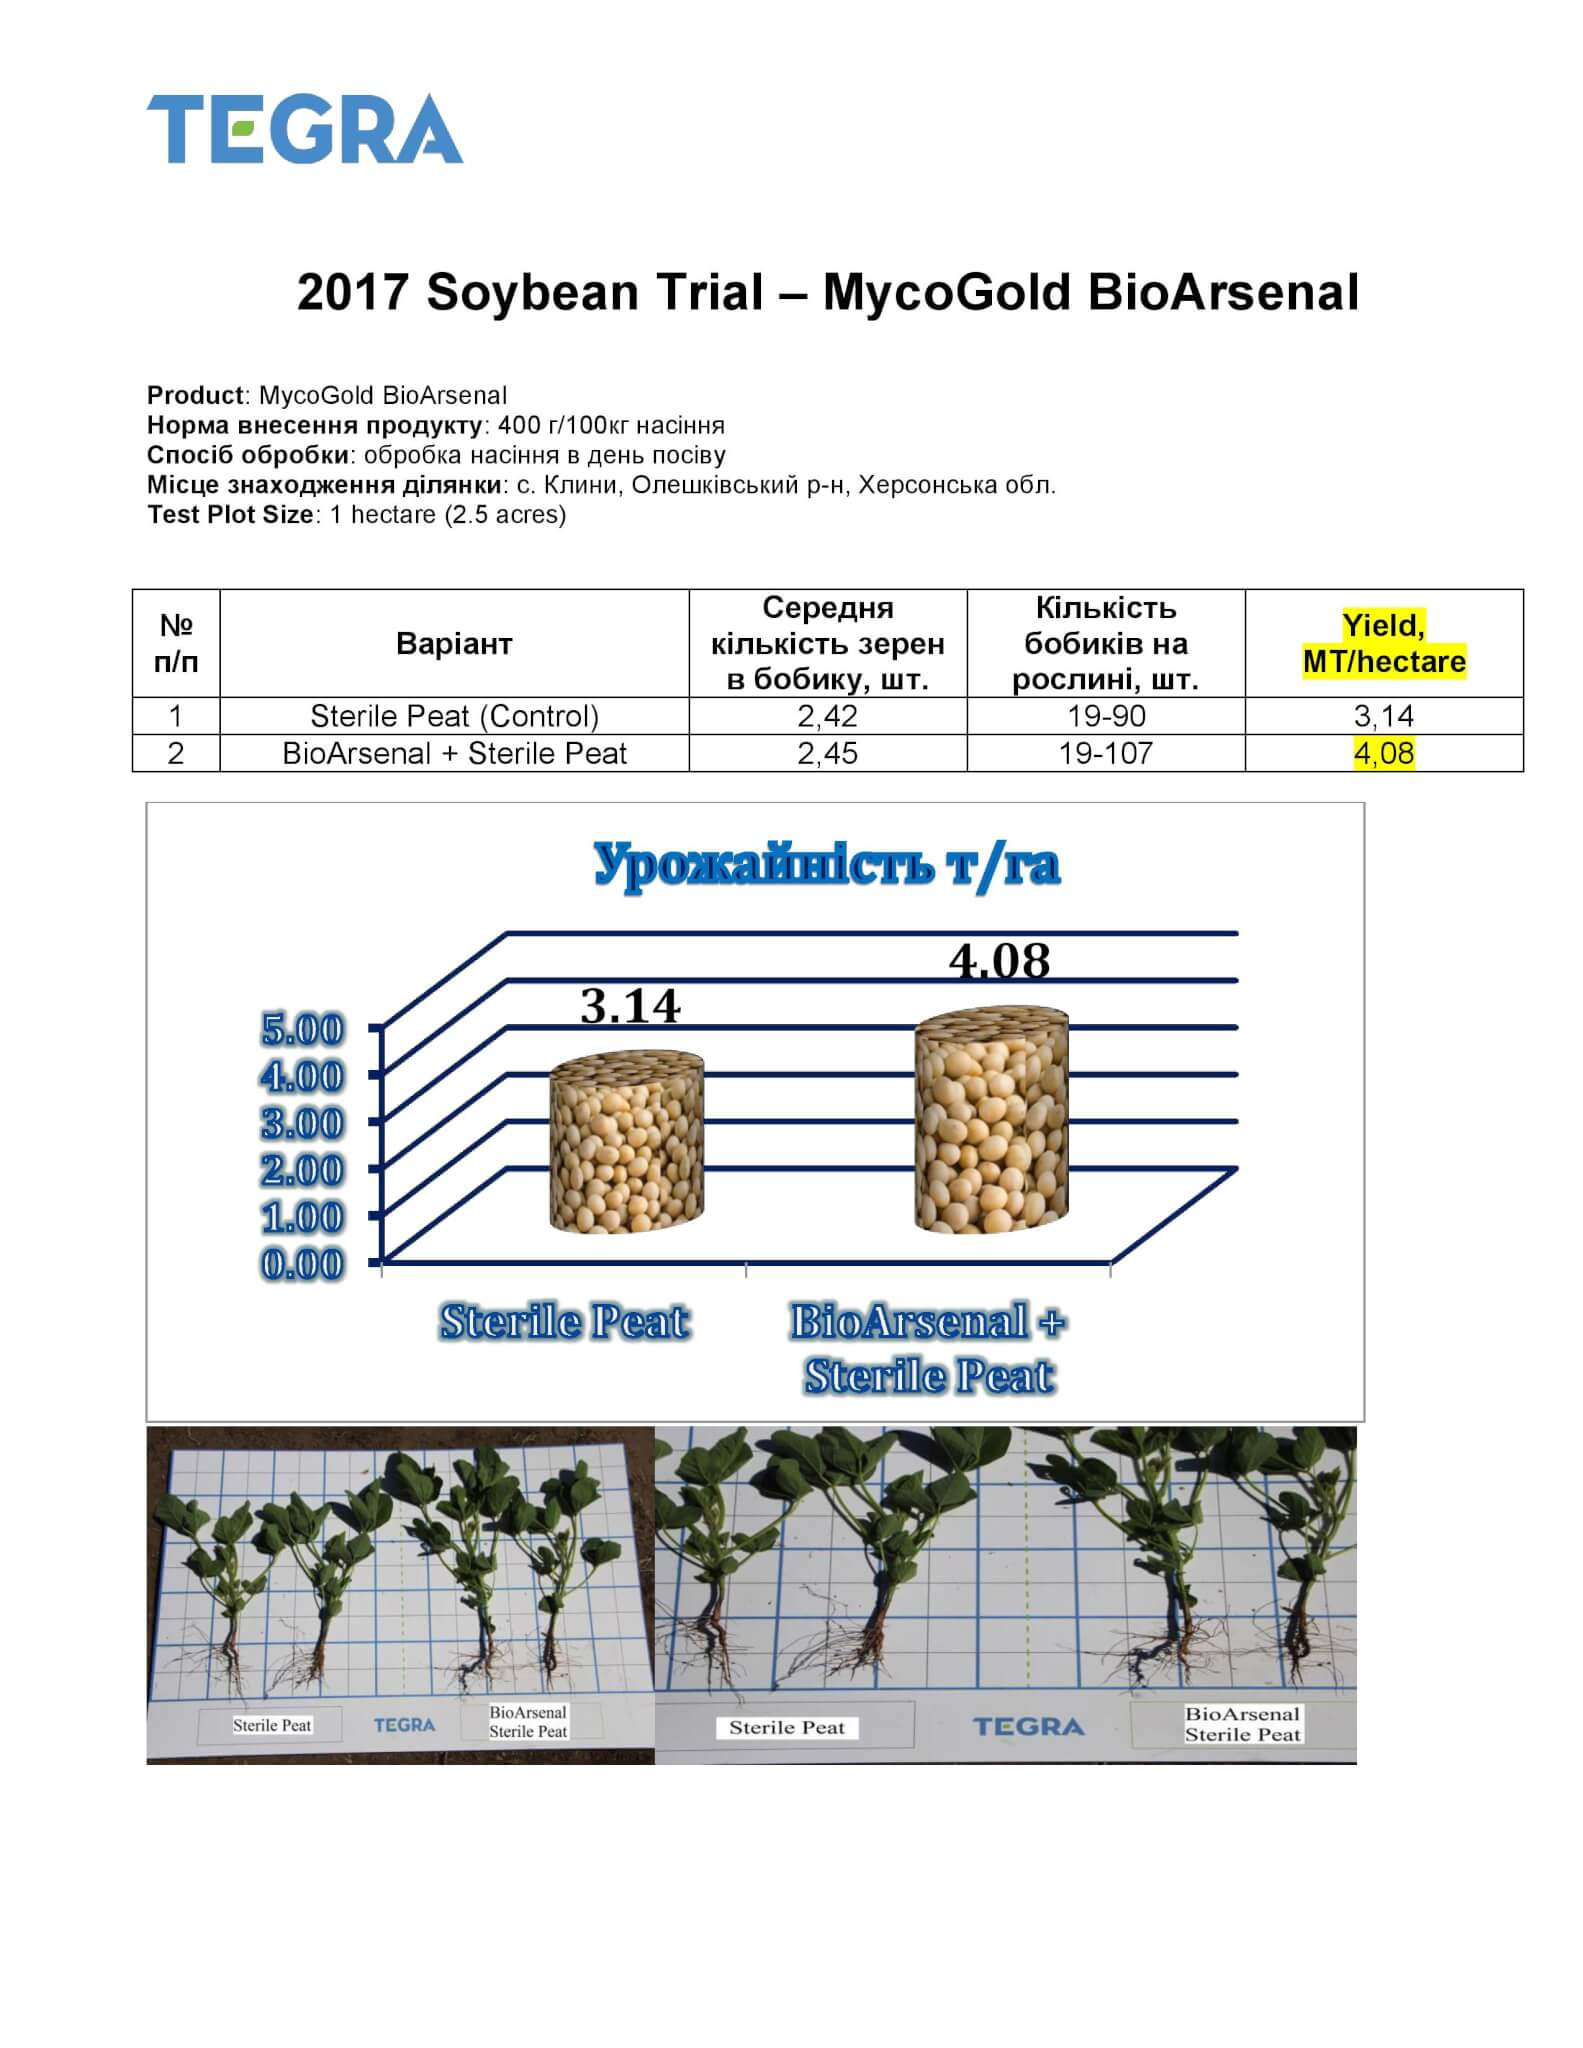 MycoGold test results